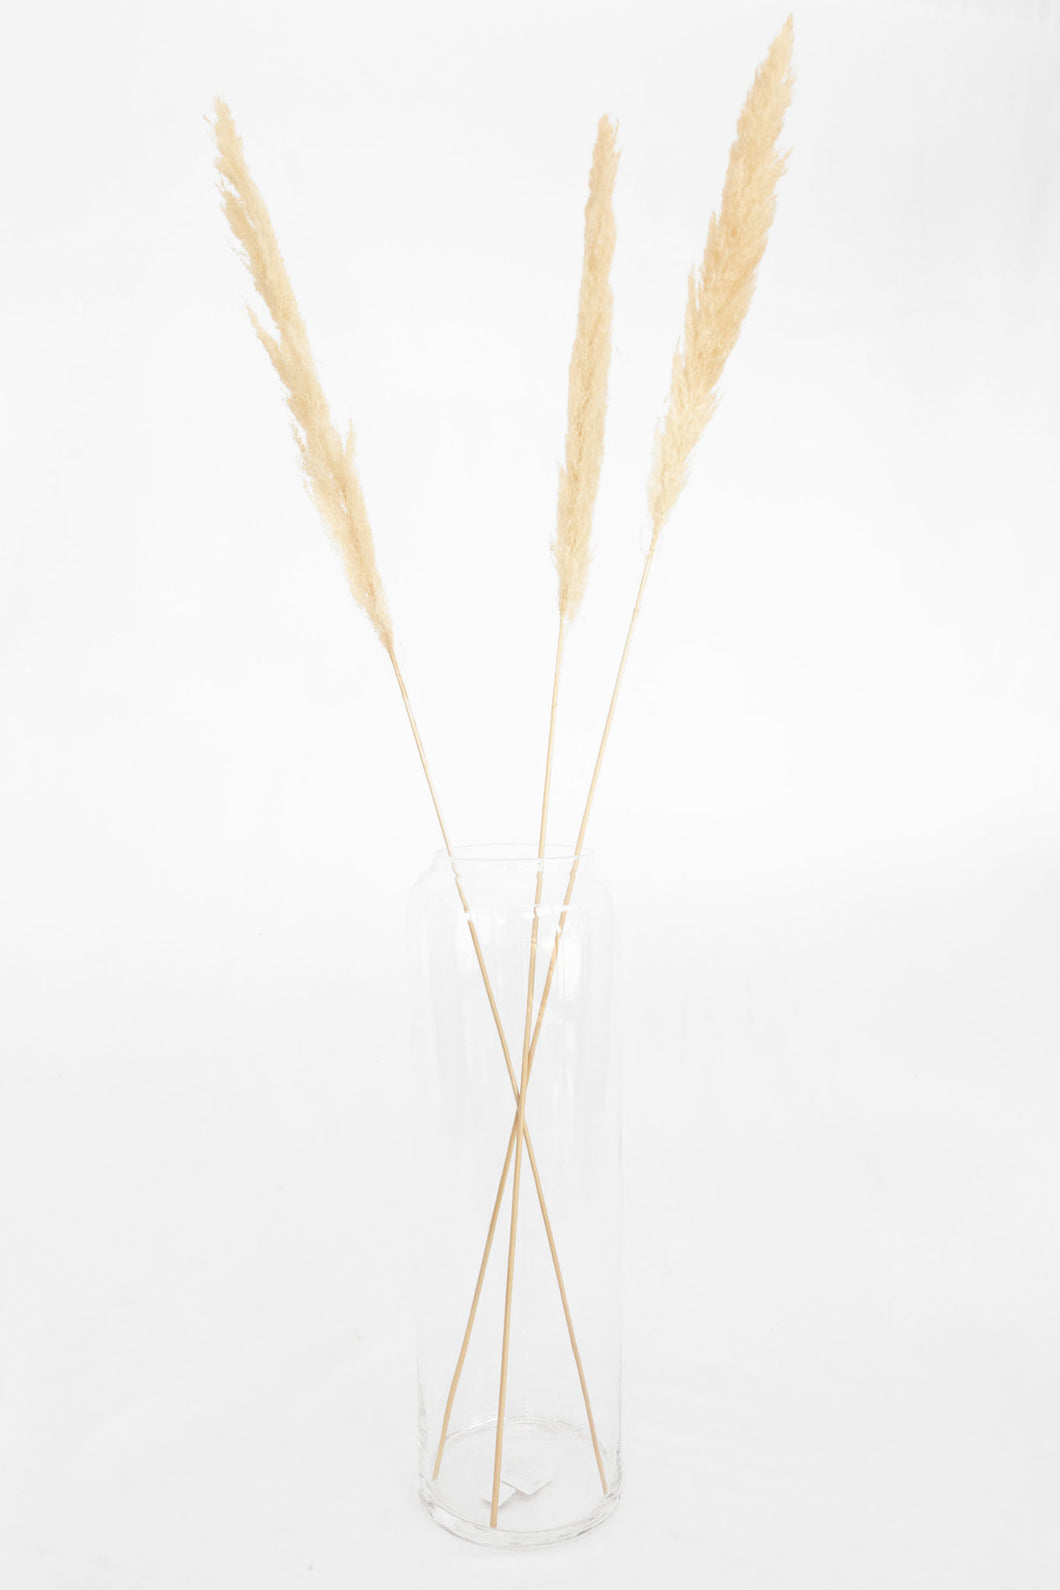 ODL Pampas Grass - Large - Pack of 3